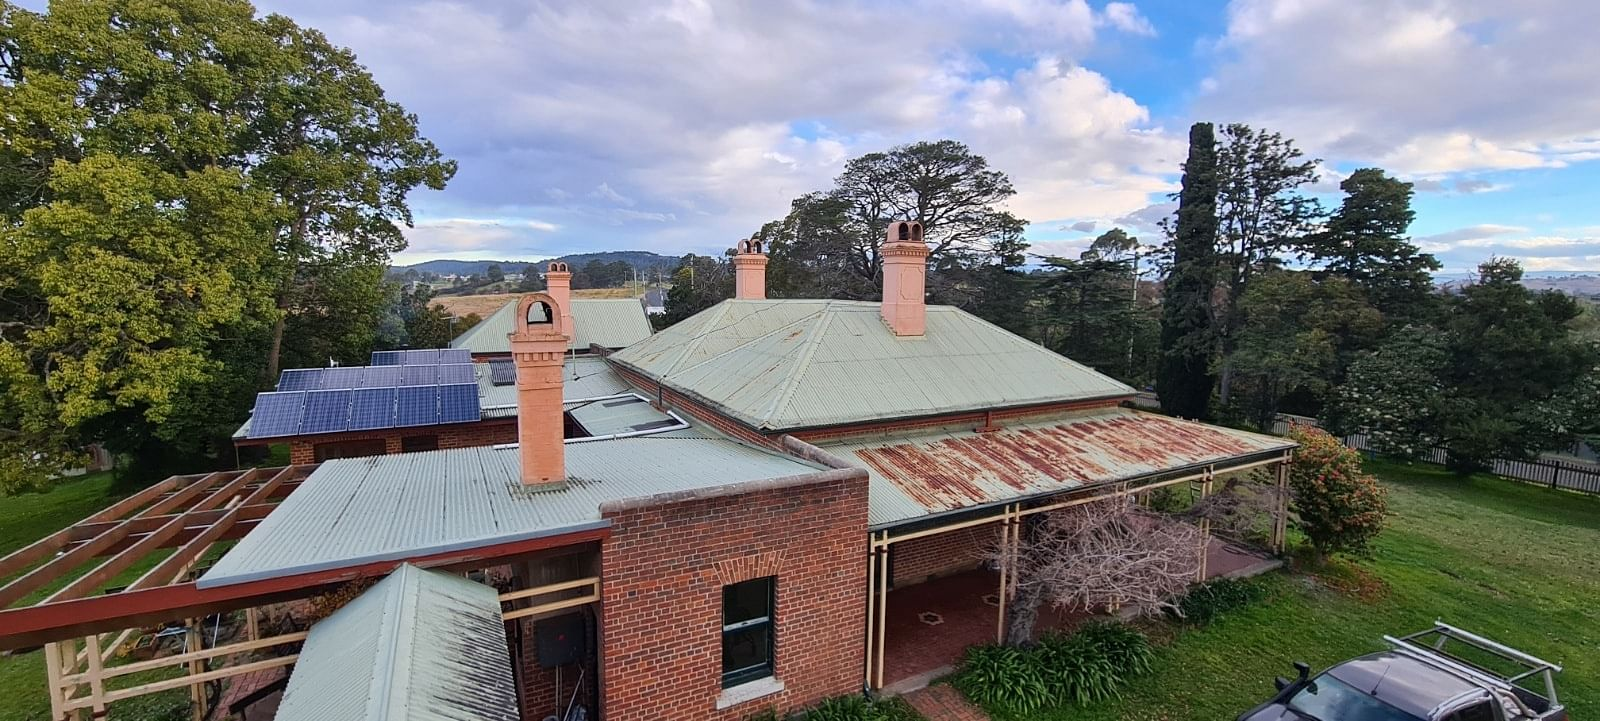 The rusted roof attached to Bega property, Narroon will be repaired and repainted using a Small Heritage Grant.